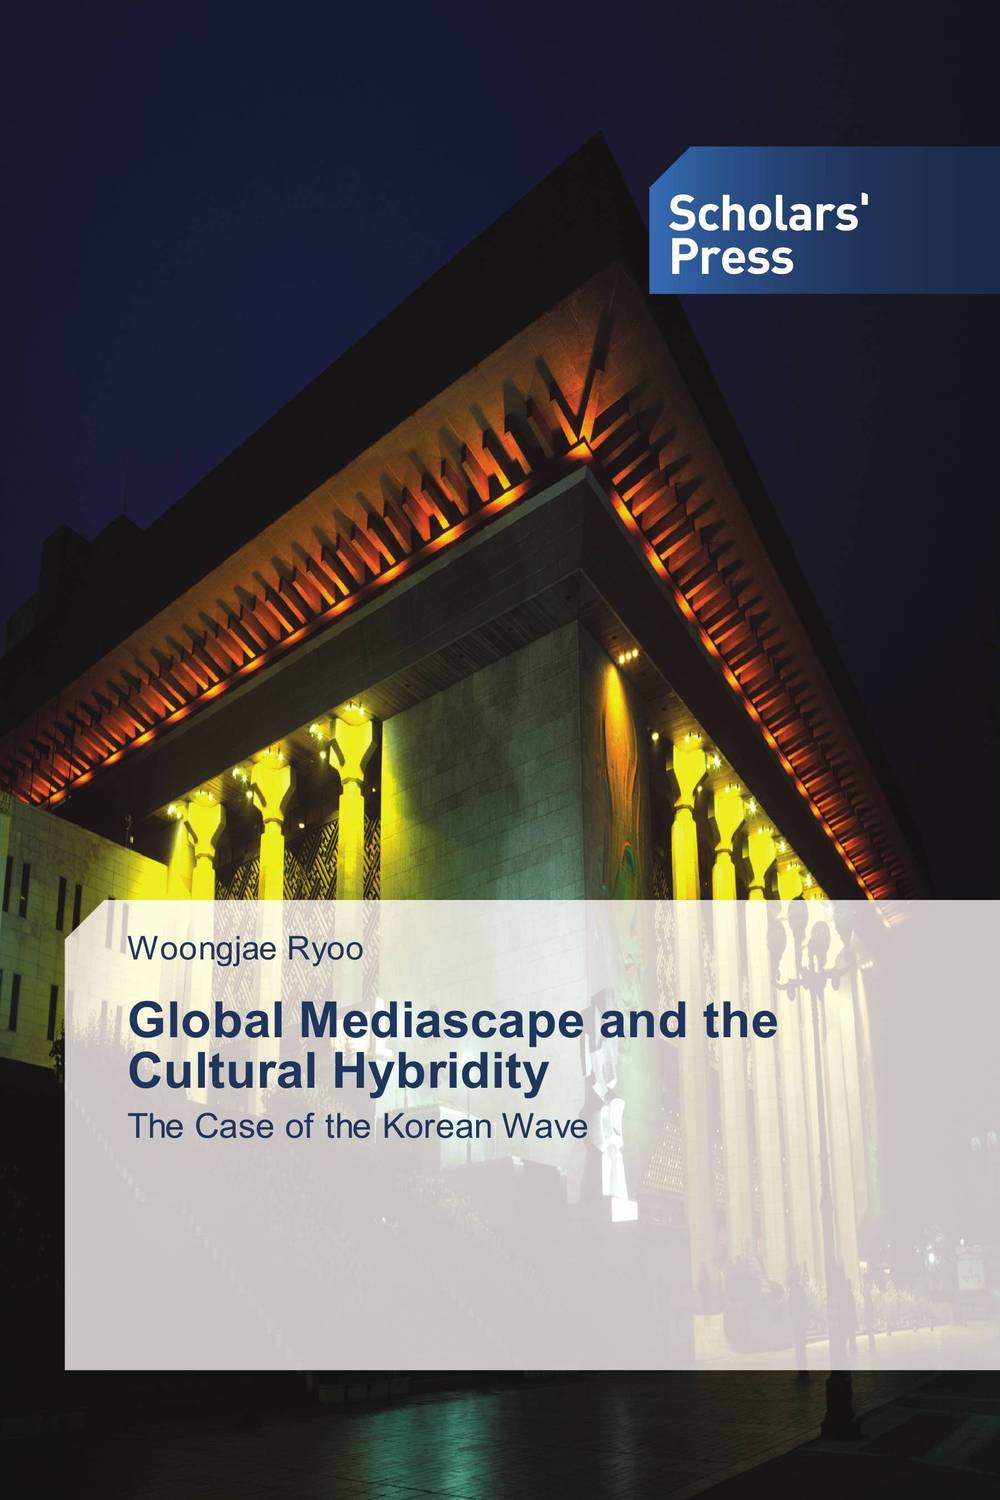 Global Mediascape and the Cultural Hybridity folk media and cultural values among the igala